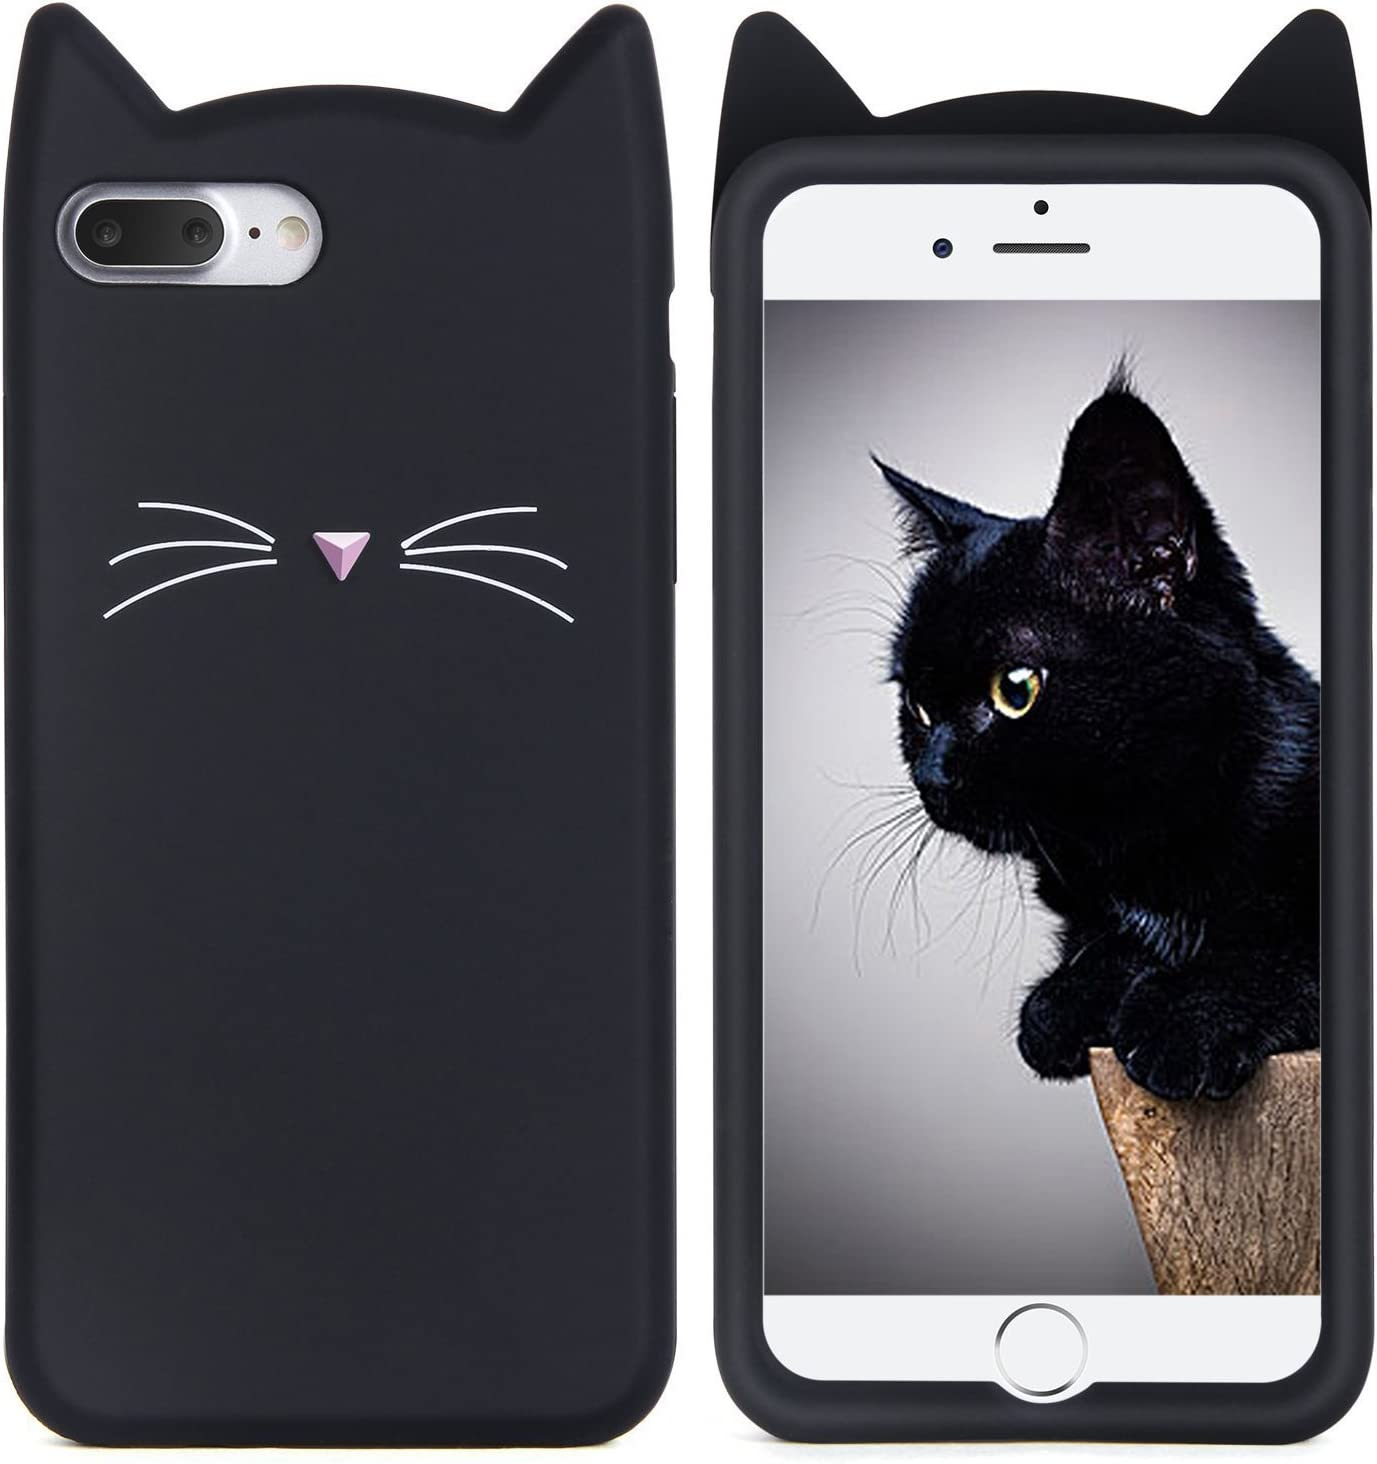 iPhone 7 Plus Case, MC Fashion Cute 3D Black MEOW Party Cat Kitty Whiskers Protective Soft Case Skin for Apple iPhone 7 Plus (2016) (Cat ...